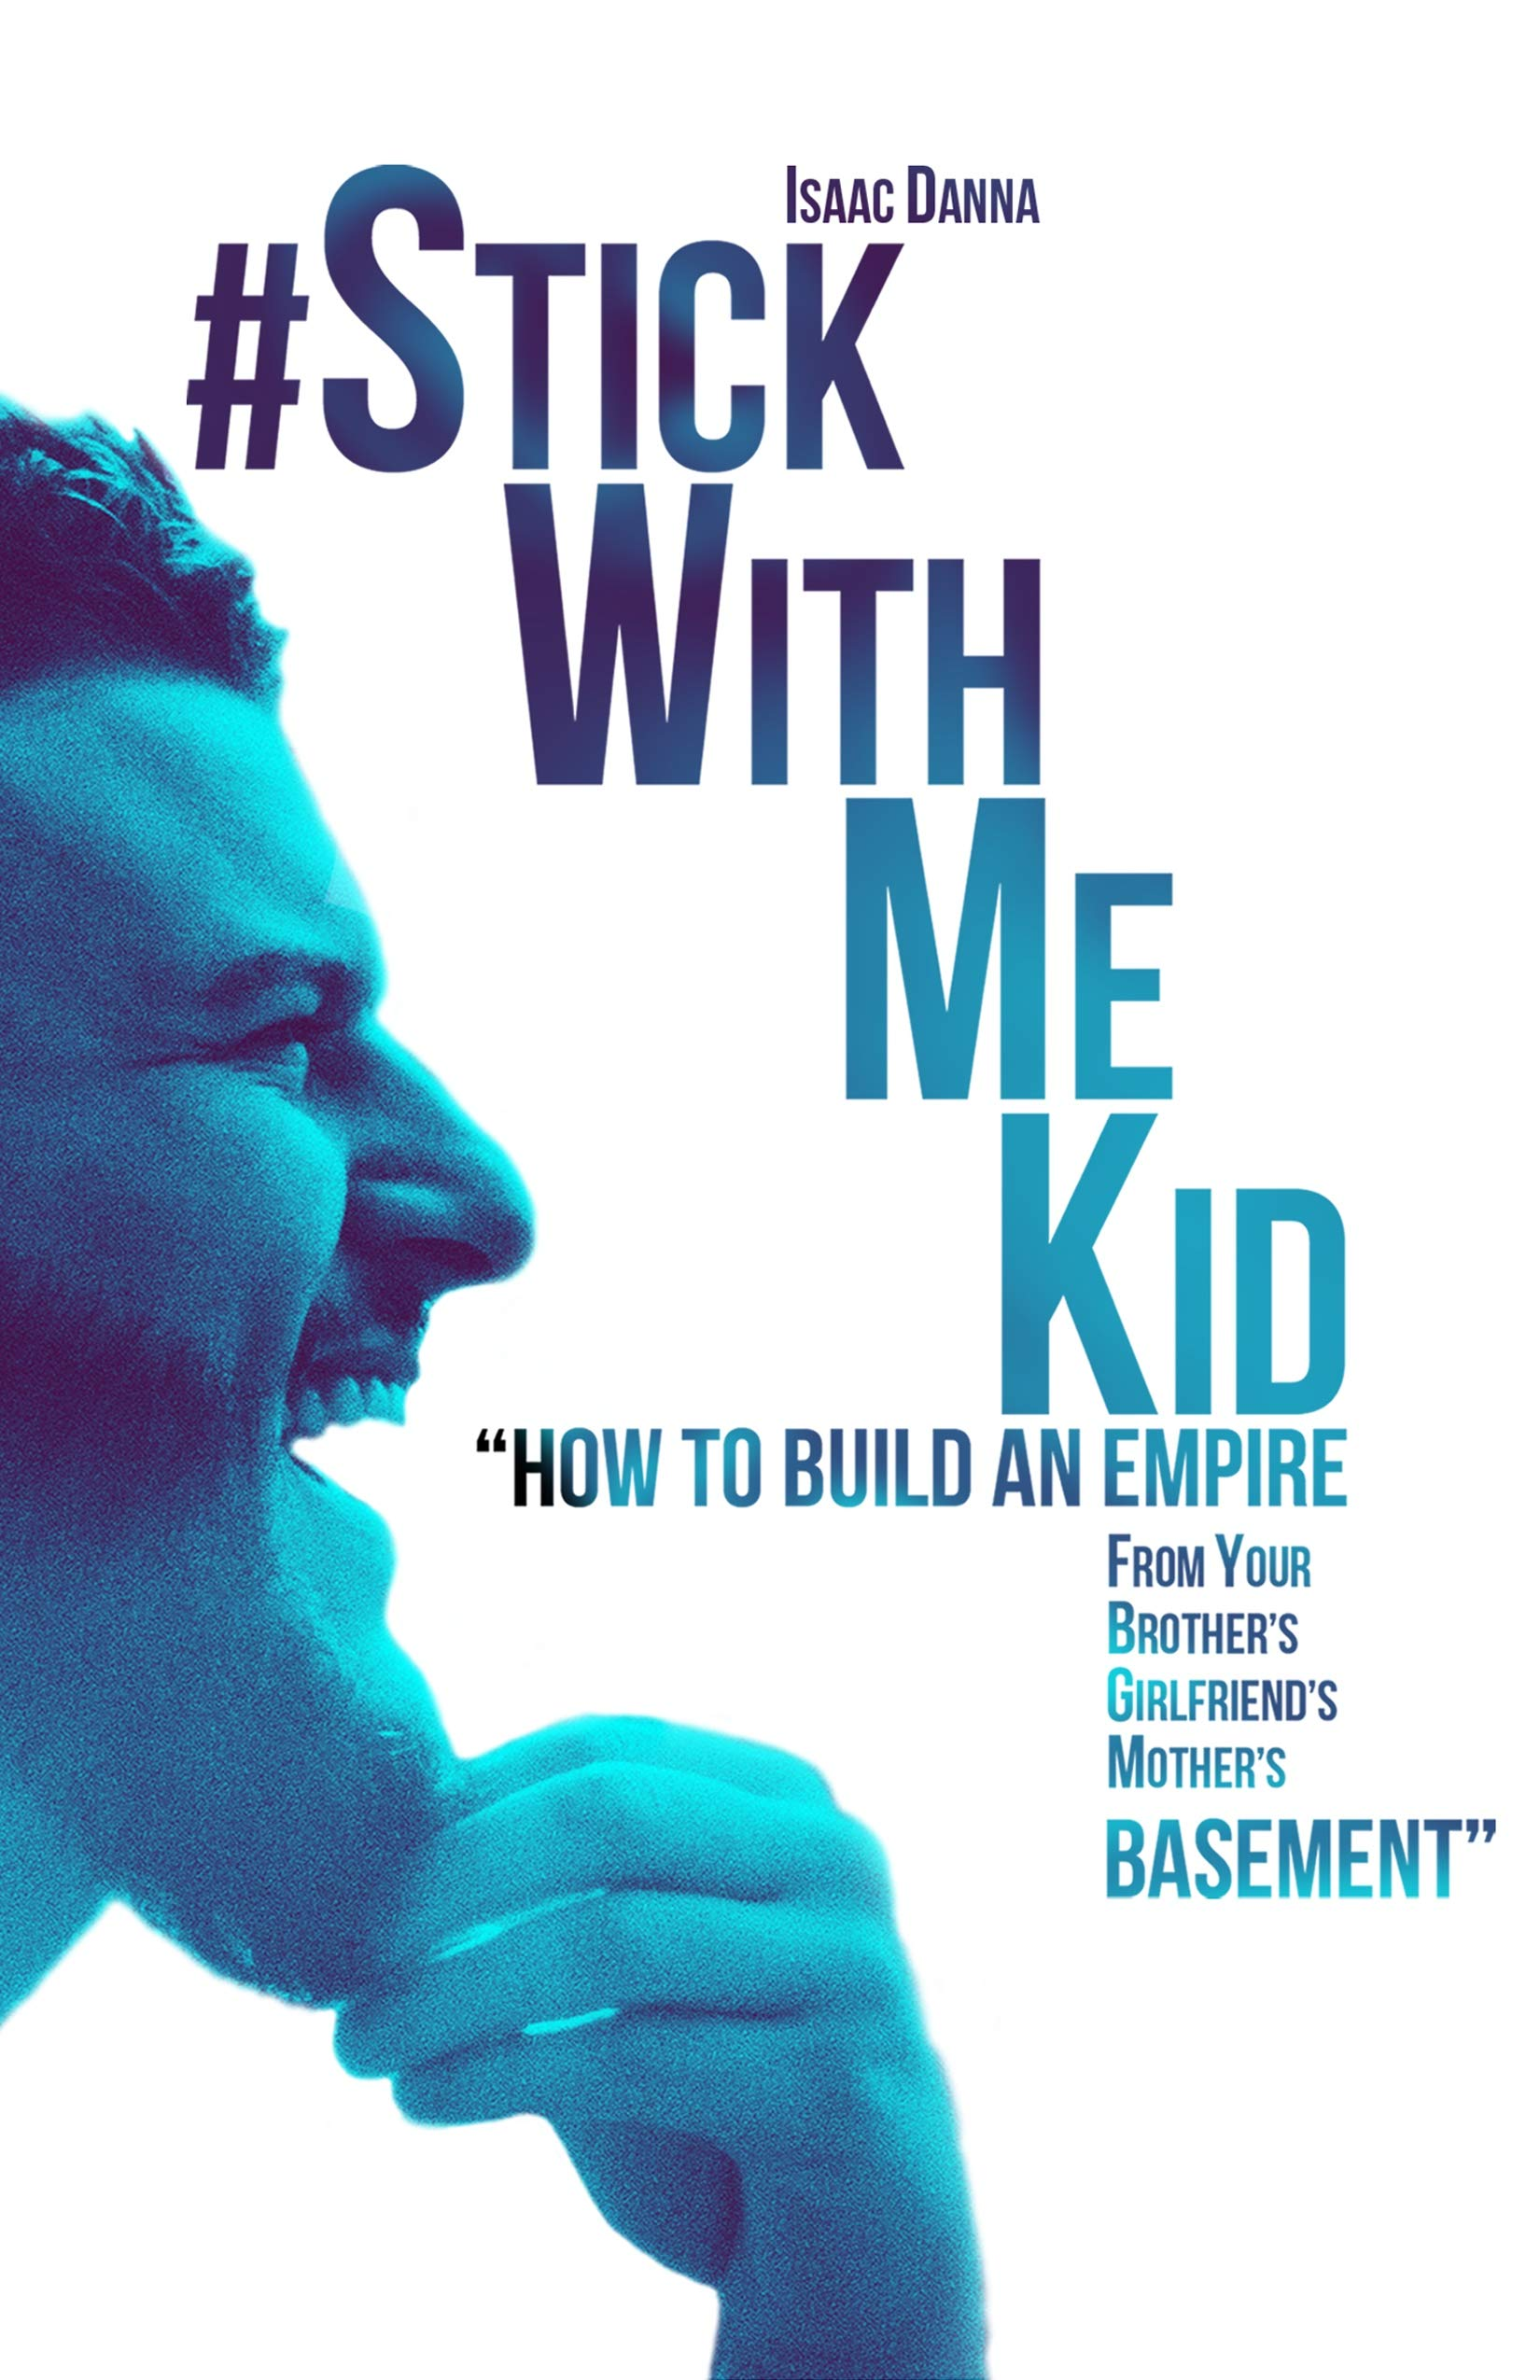 #StickWithMeKid: How To Build An Empire From Your Brother's Girlfriend's Mother's Basement